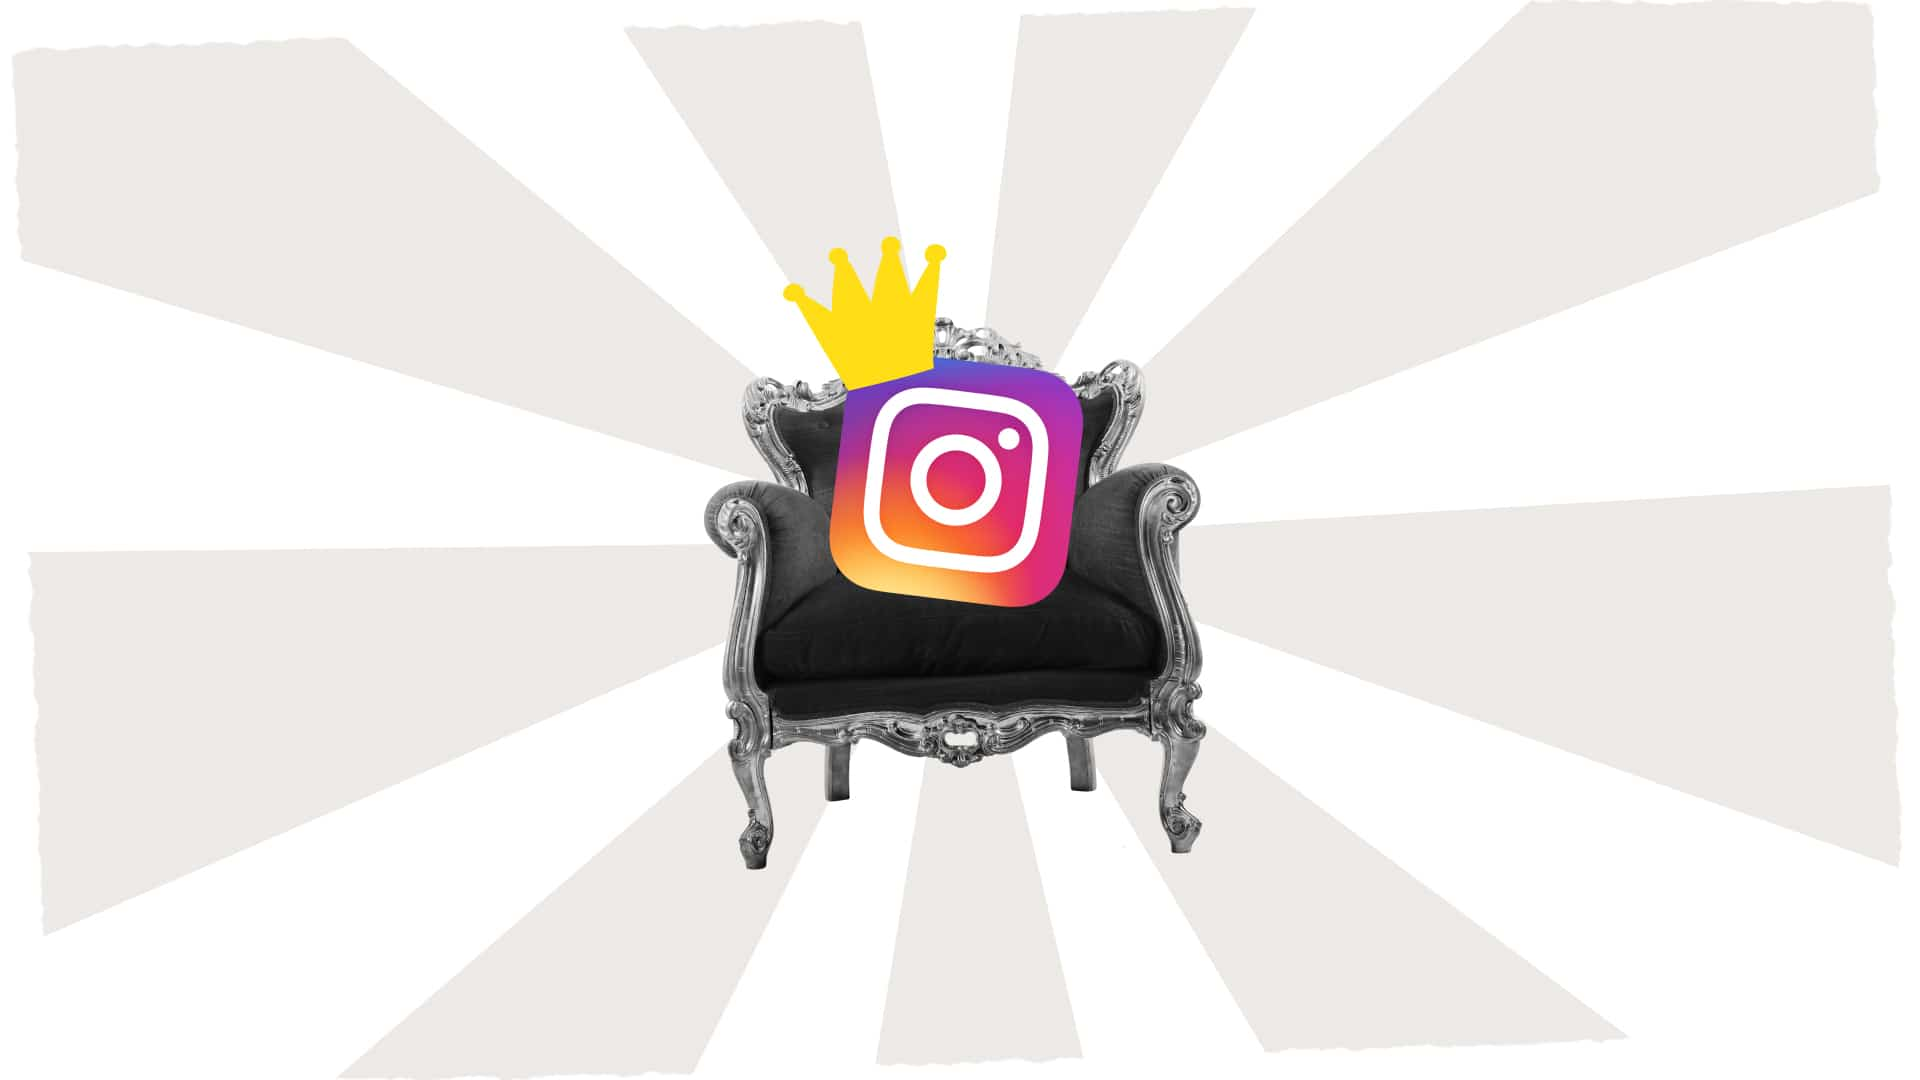 crush conçoit des opérations de marketing d'influence sur Instagram.